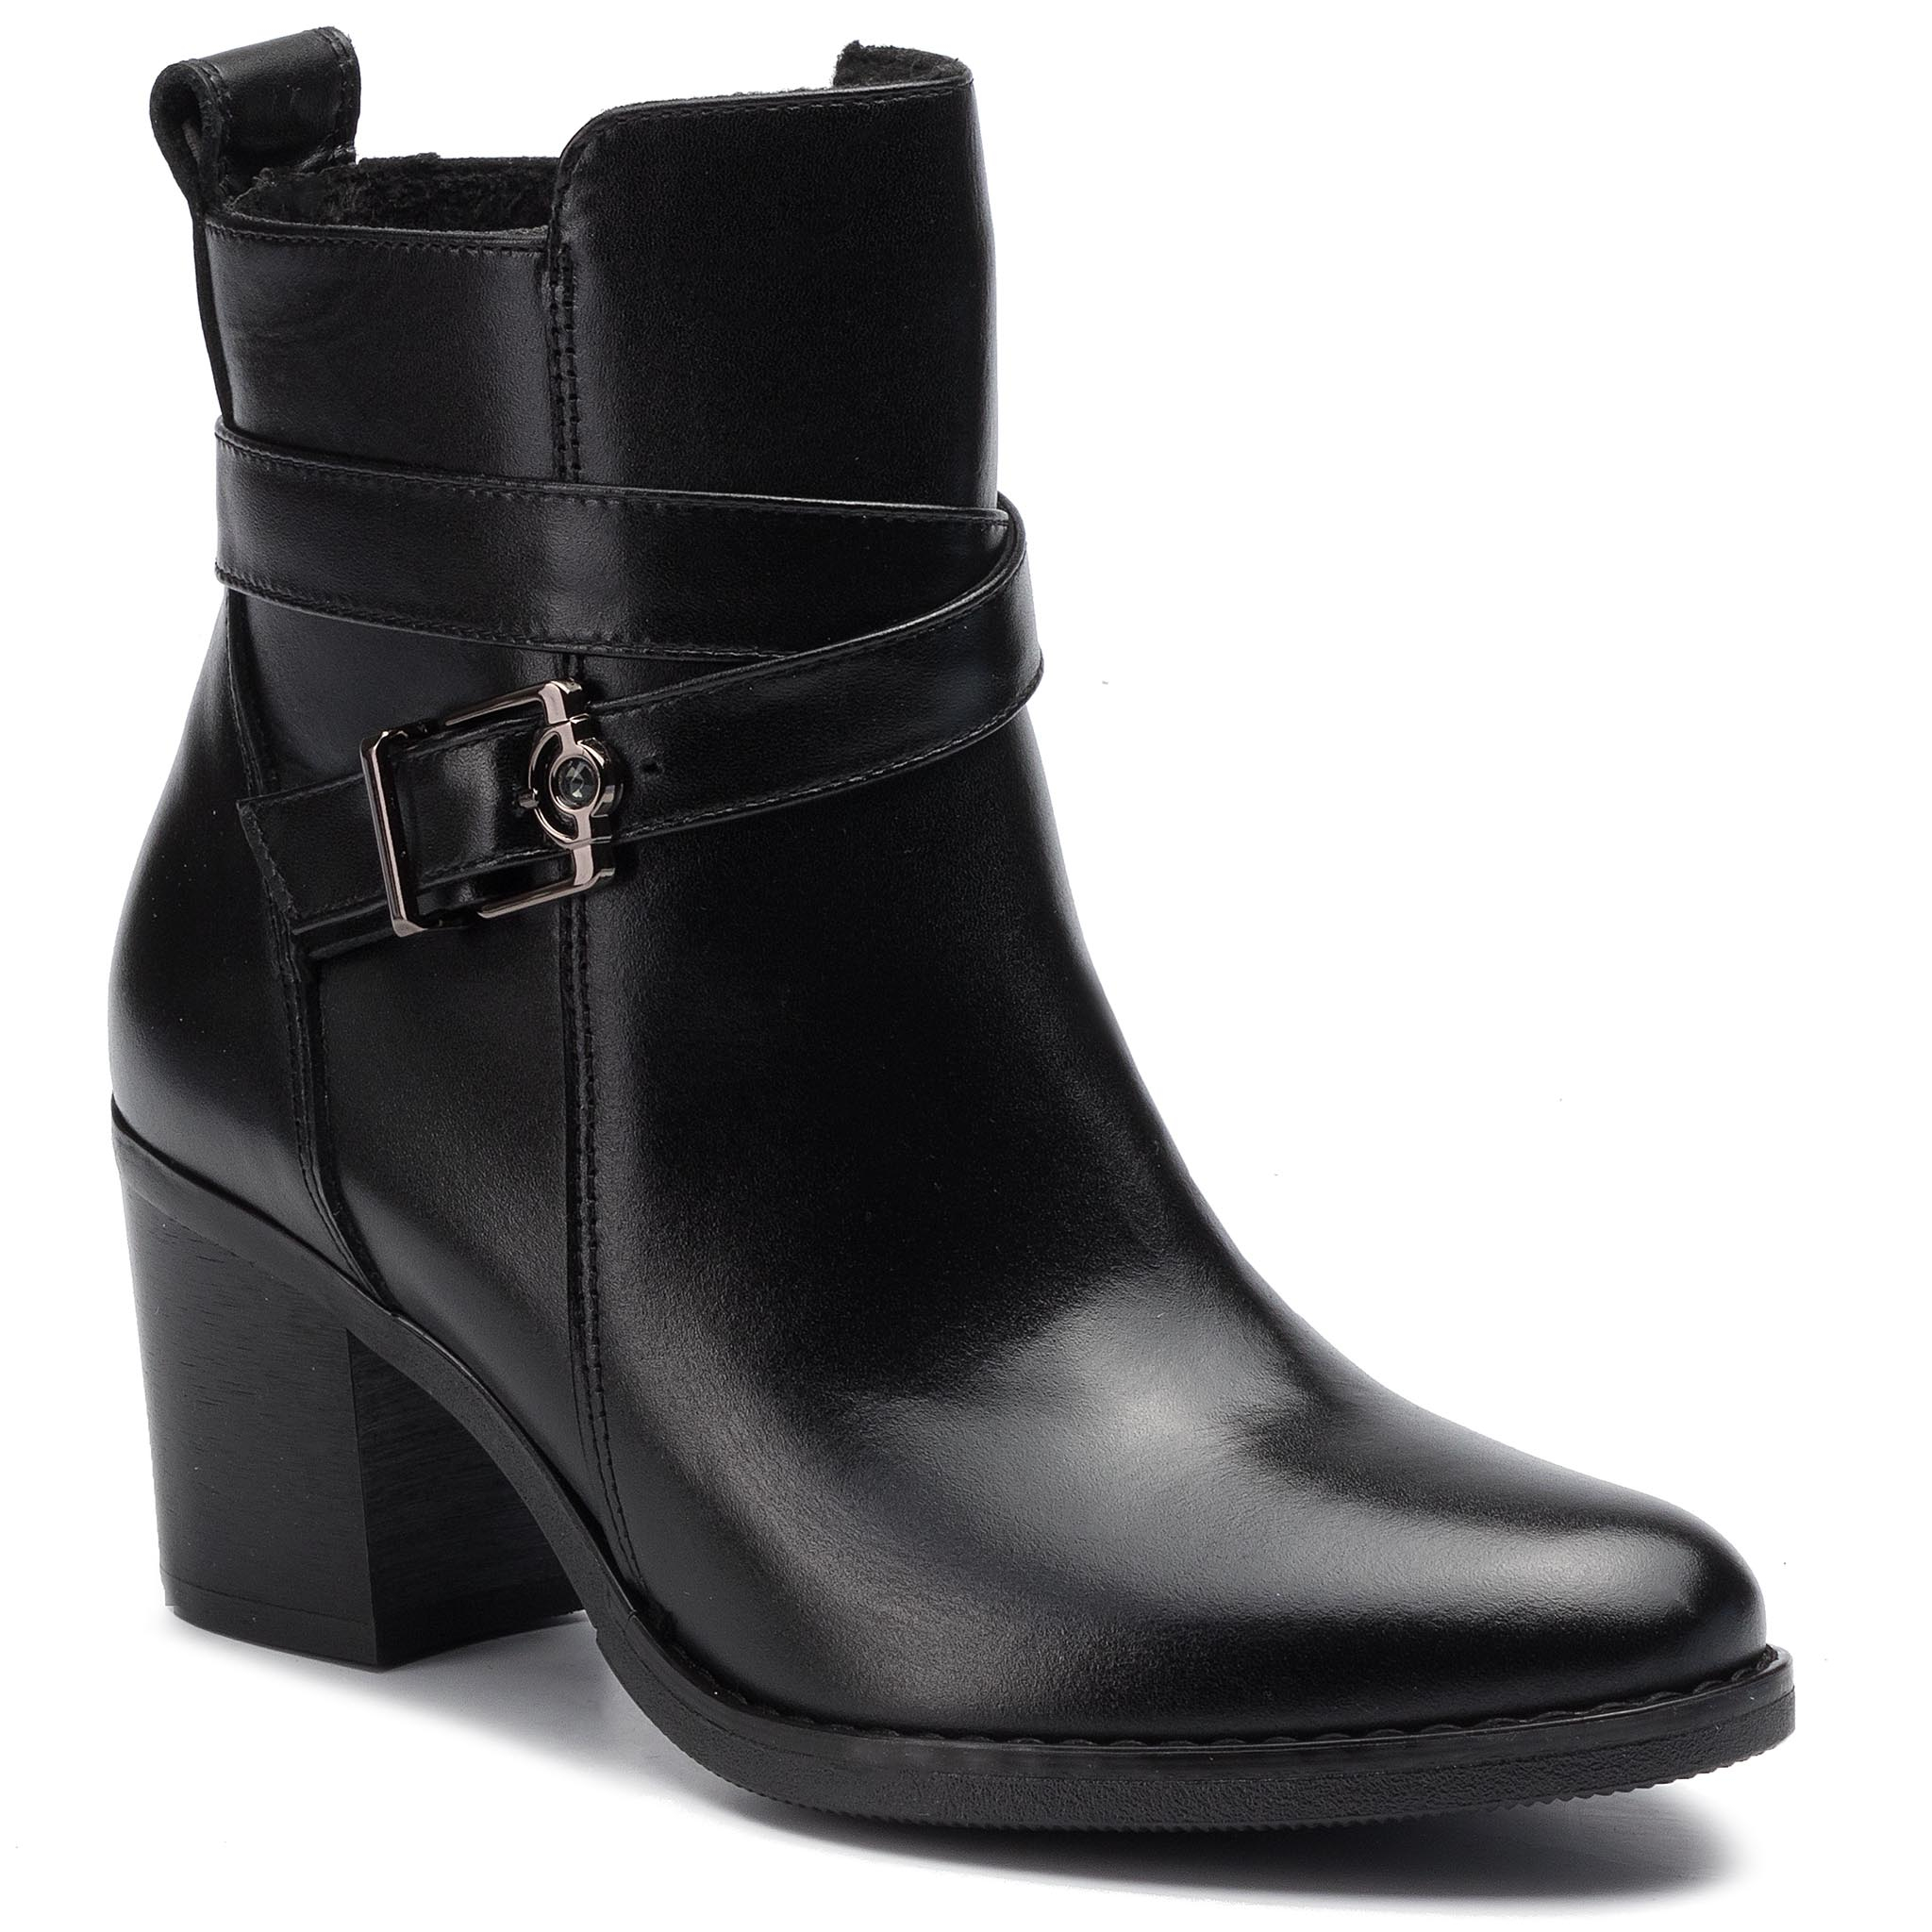 Bottines ANN MEX - 0404 01S Noir